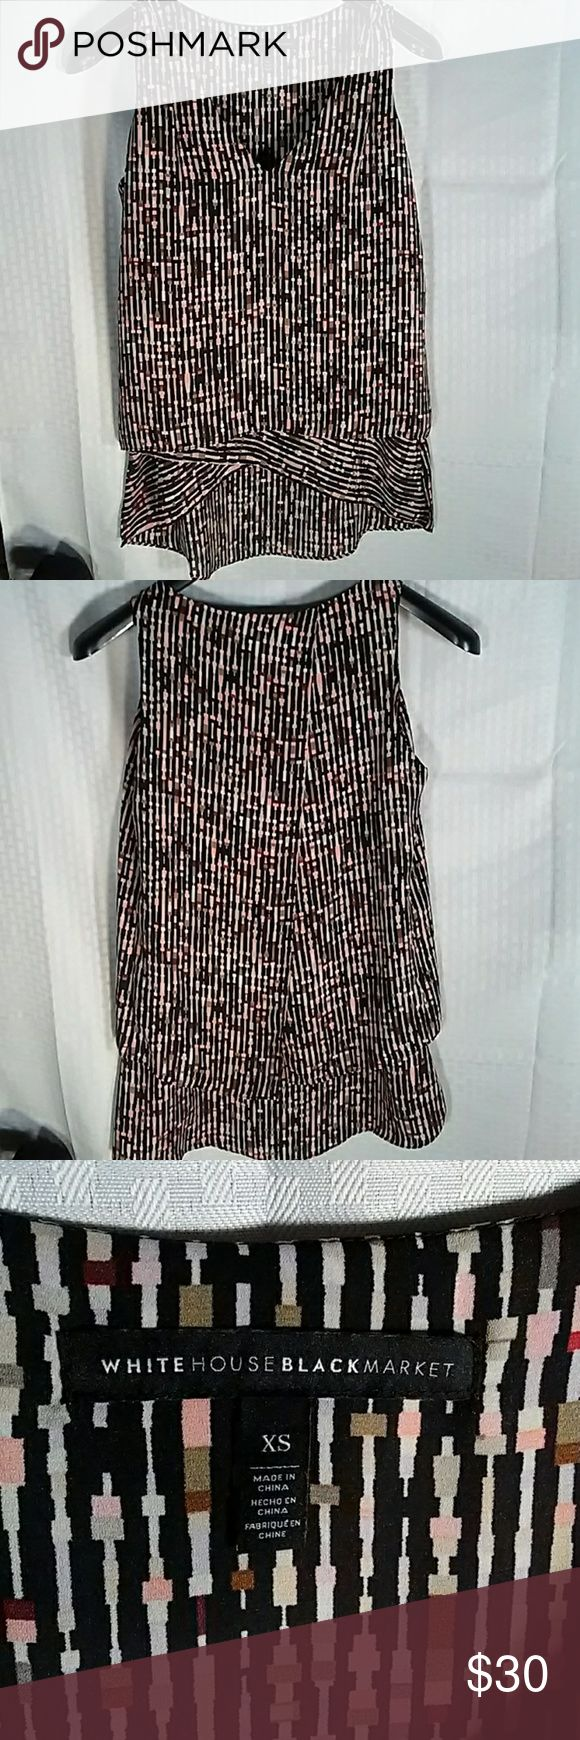 WHBM career top. Black. Sz. XS Beautiful flowy top. Sleeveless. Black background with peach, cream and brown print. Versitile piece for work or dinner with the girls. Multi-layered. 100% polyester. 28 inches shoulder to hem so wearing as a tunic with leggings may work. 18 inches across bust. White House Black Market Tops Blouses